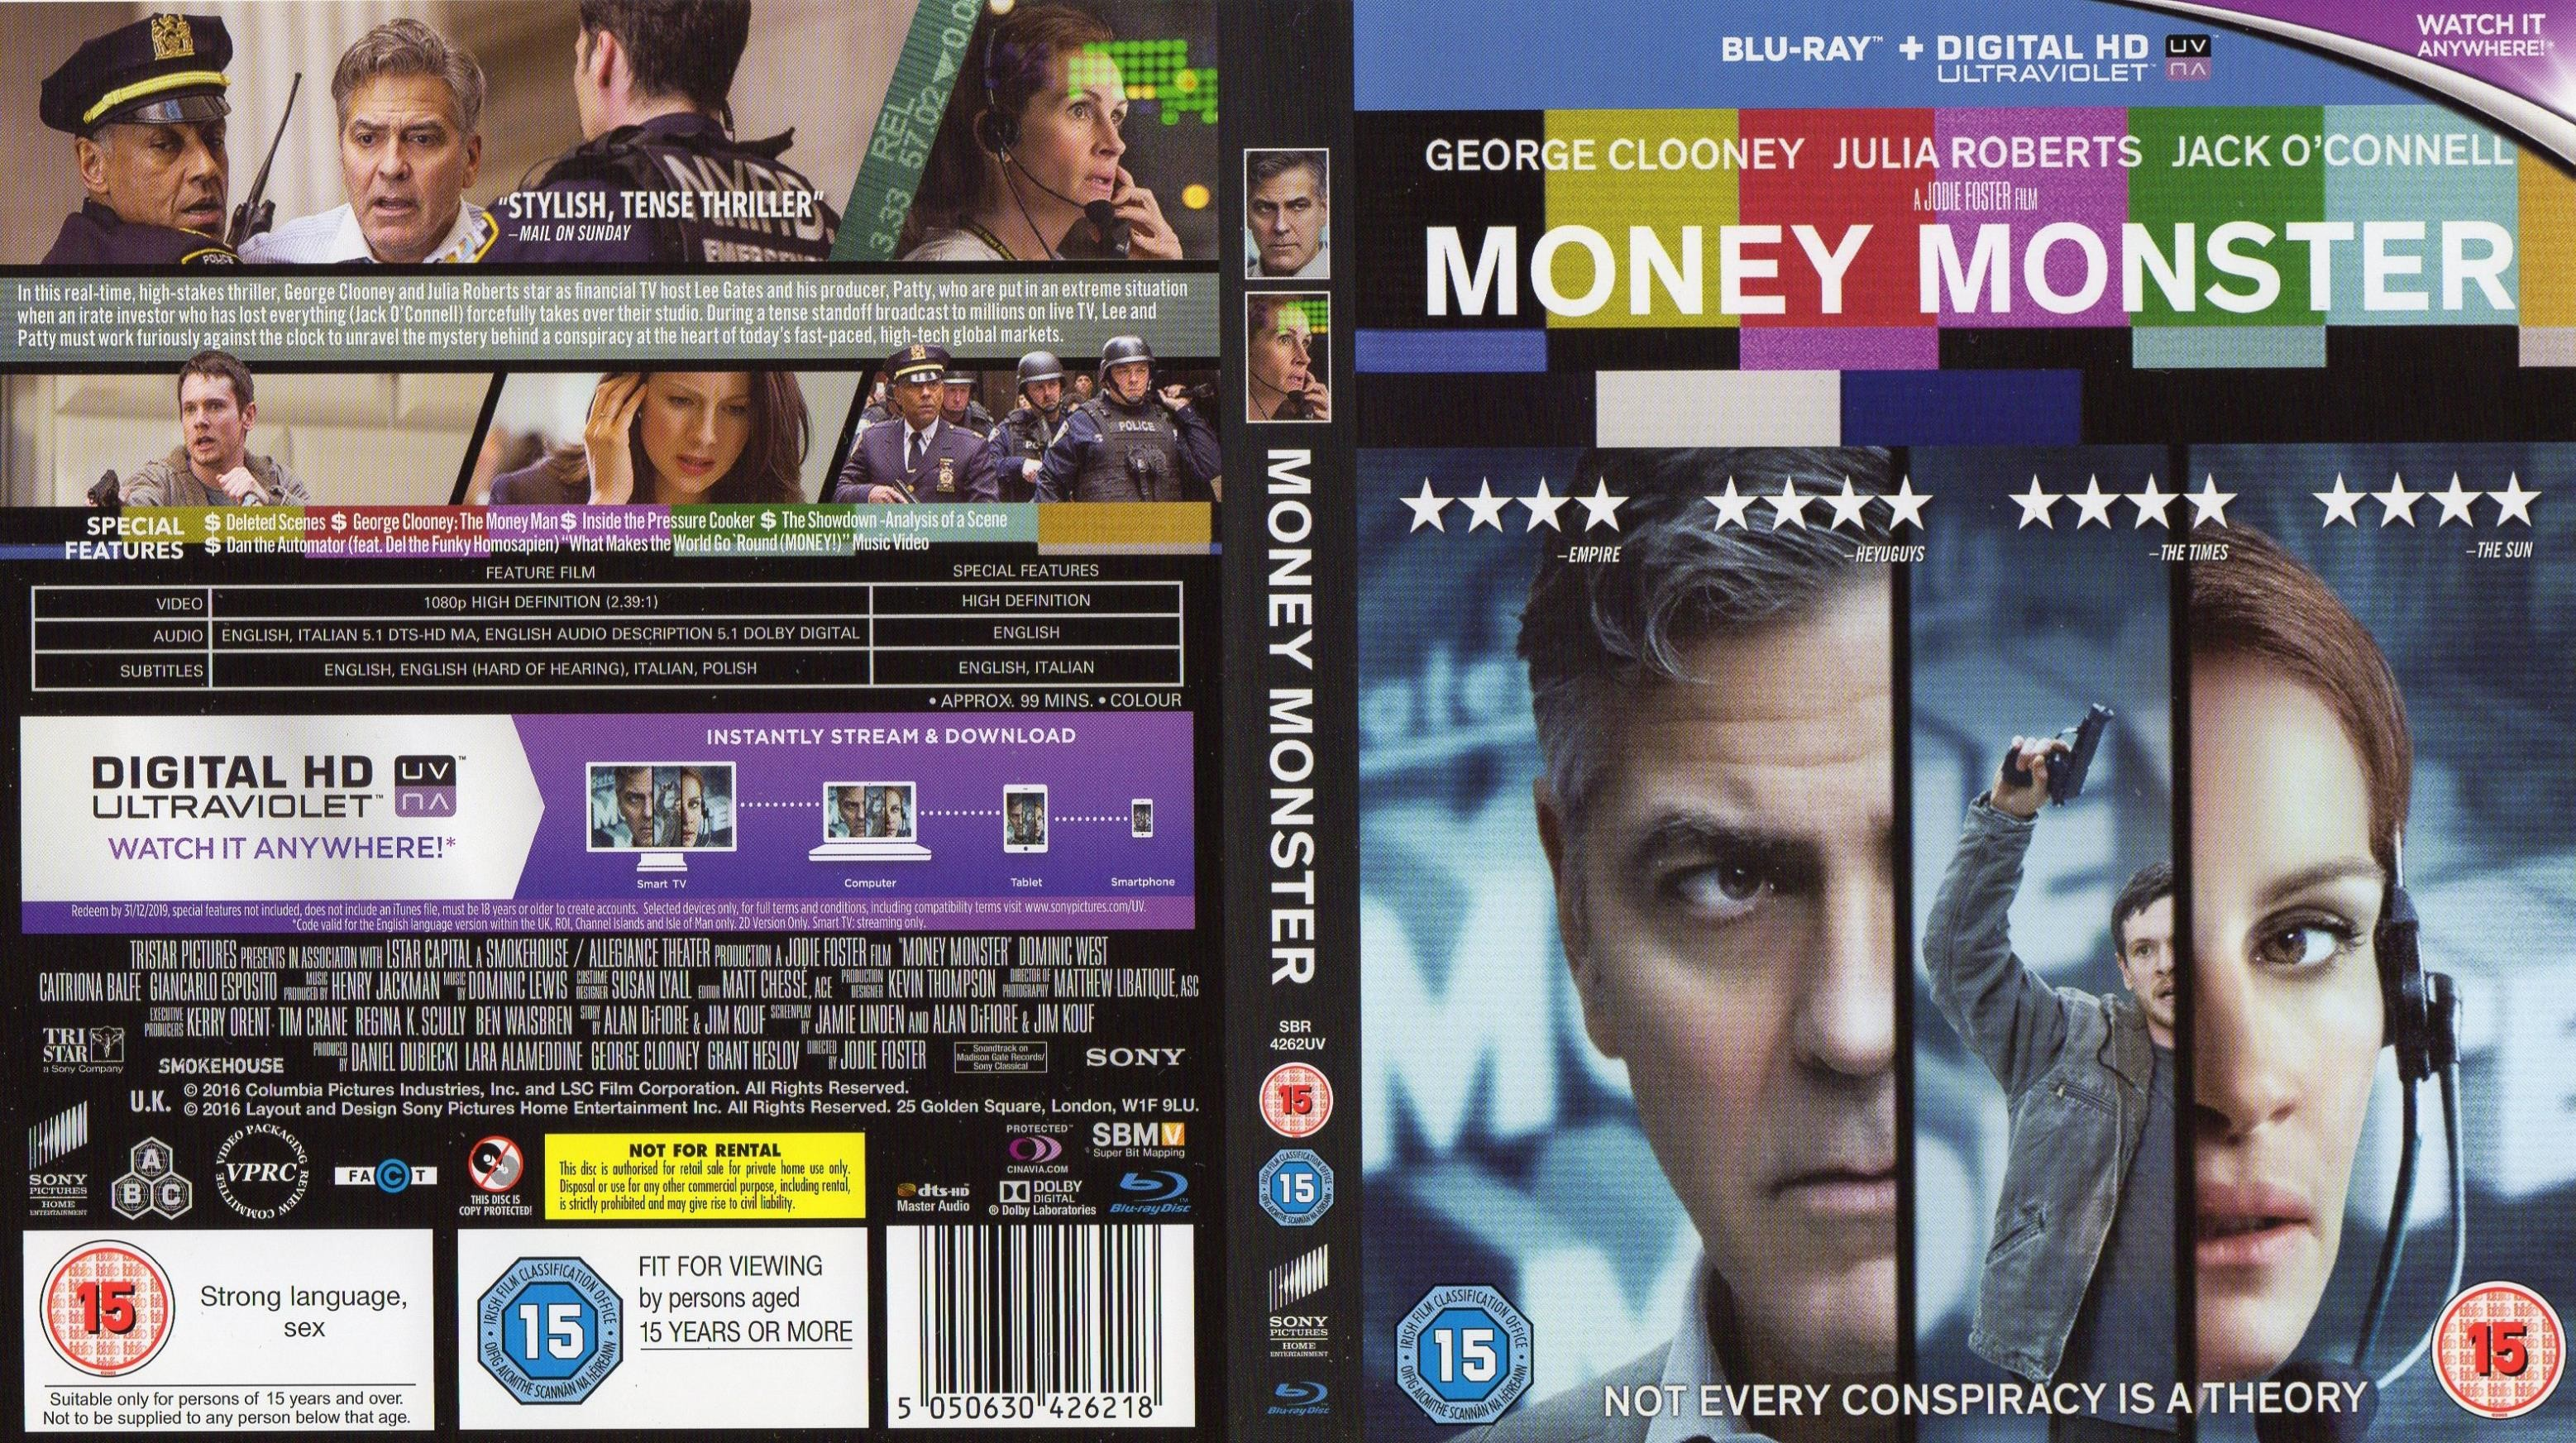 Money Monster (2016) R2 Blu-Ray Cover & Label | Dvd Covers ...